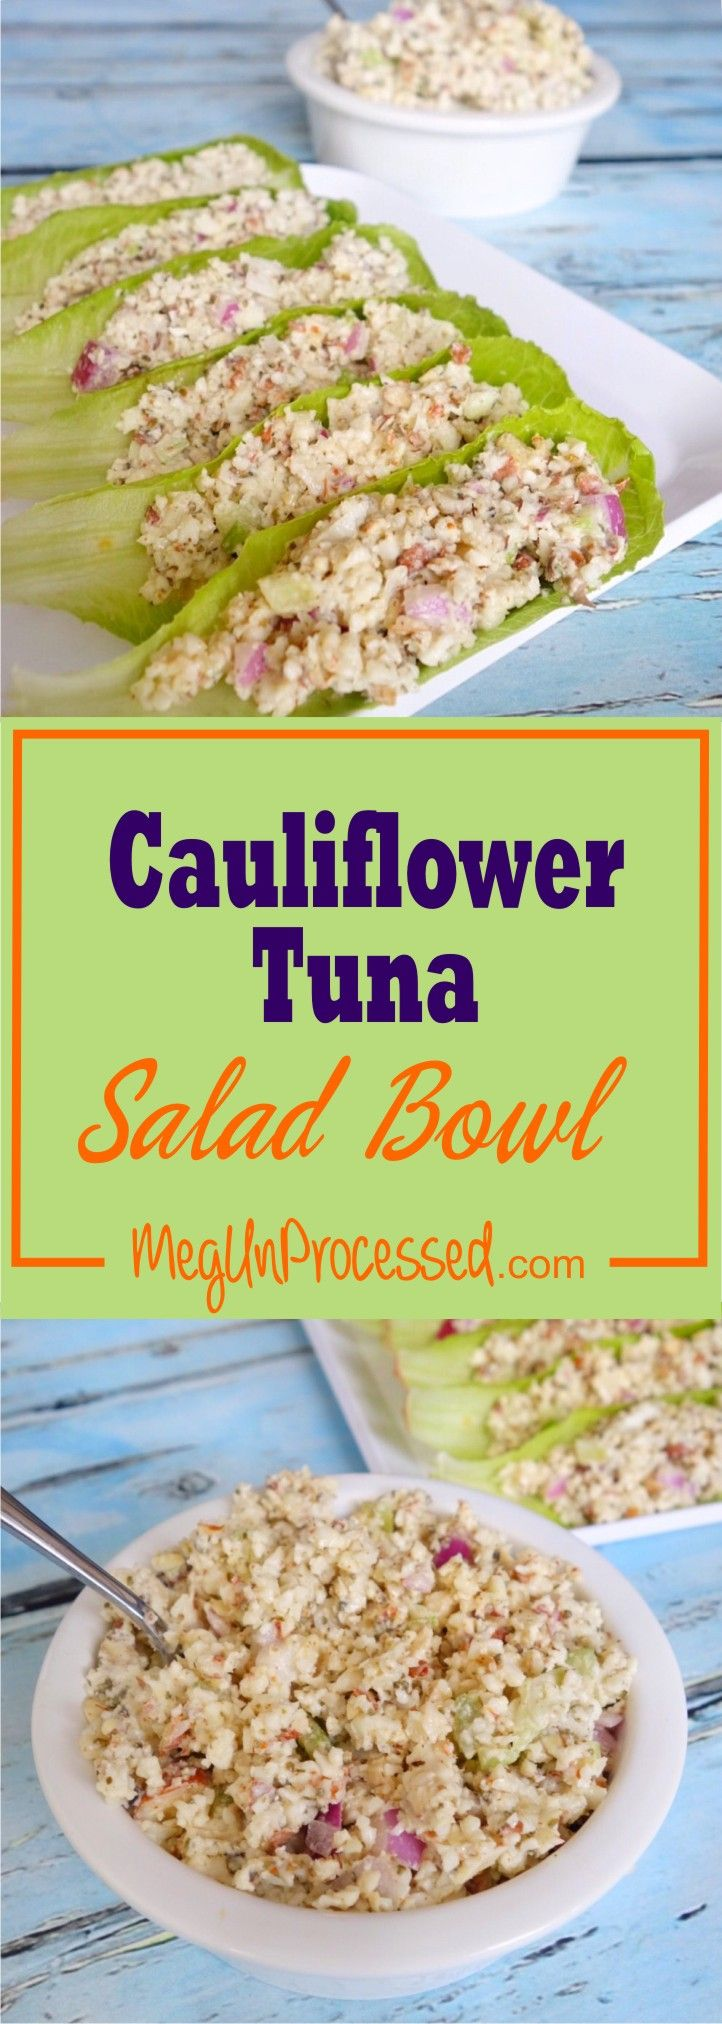 [VEGAN] Mock Tuna Salad: Cauliflowers are packed with essential vitamins and minerals that stop all types of cancer cells from growing and boost your immune system. he almonds present in this recipe will also help improve your cholesterol levels. Cauliflower as a substitute for tuna? I say yes!!